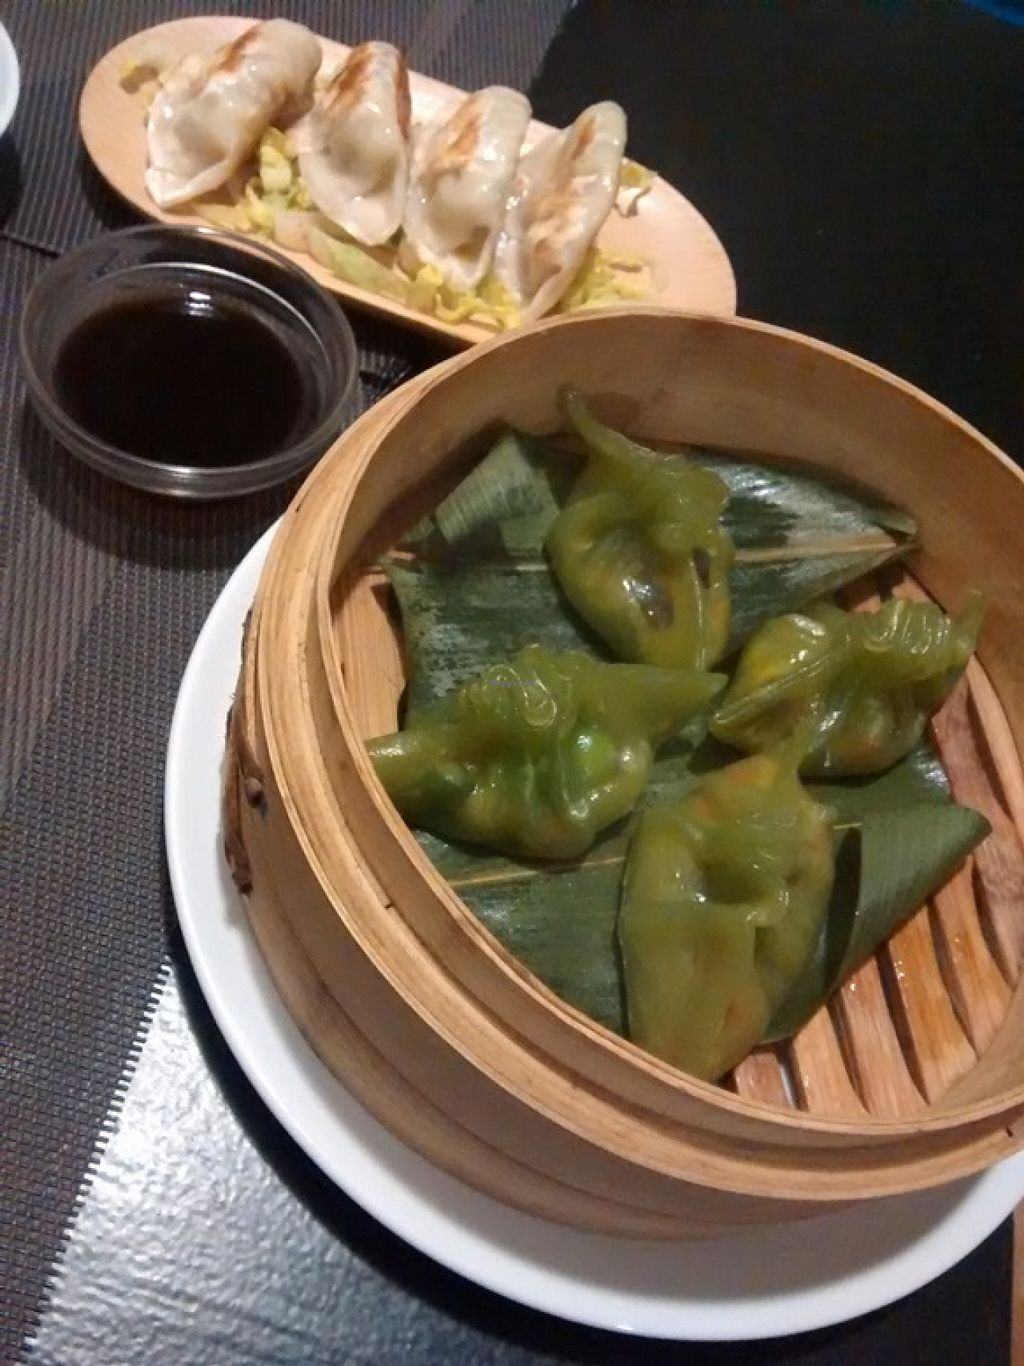 """Photo of DimSum Market  by <a href=""""/members/profile/LeFunks"""">LeFunks</a> <br/>Veggie guotie and wantan  <br/> May 5, 2016  - <a href='/contact/abuse/image/73205/147557'>Report</a>"""